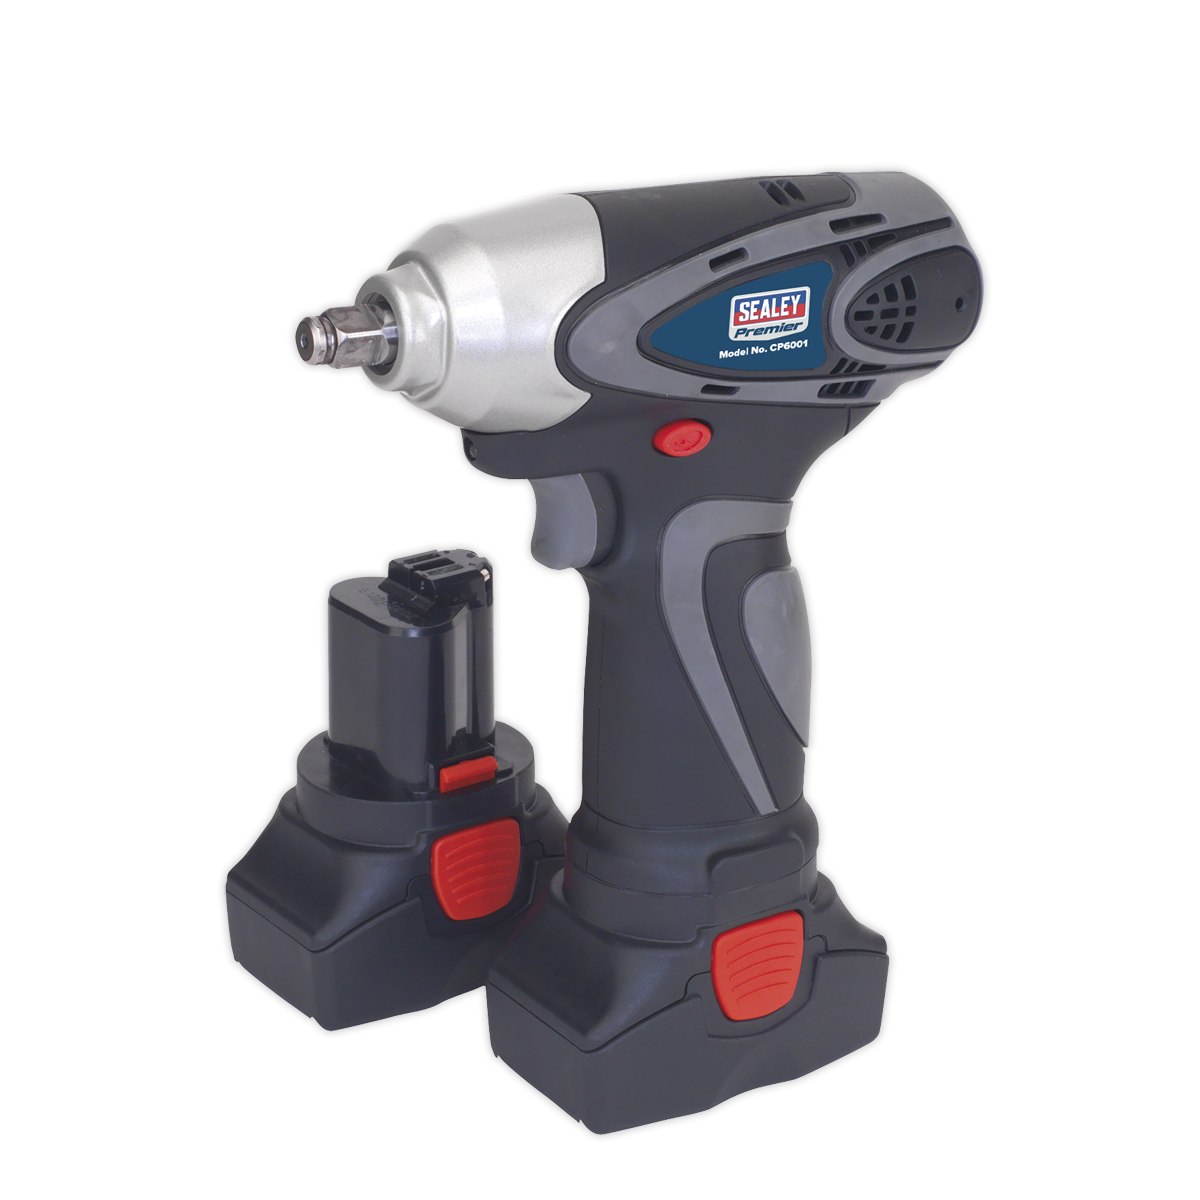 """Cordless Impact Wrench 3/8""""Sq Drive 140Nm 14.4V 2Ah Lithium-ion - 2 Batteries 40min Charger"""